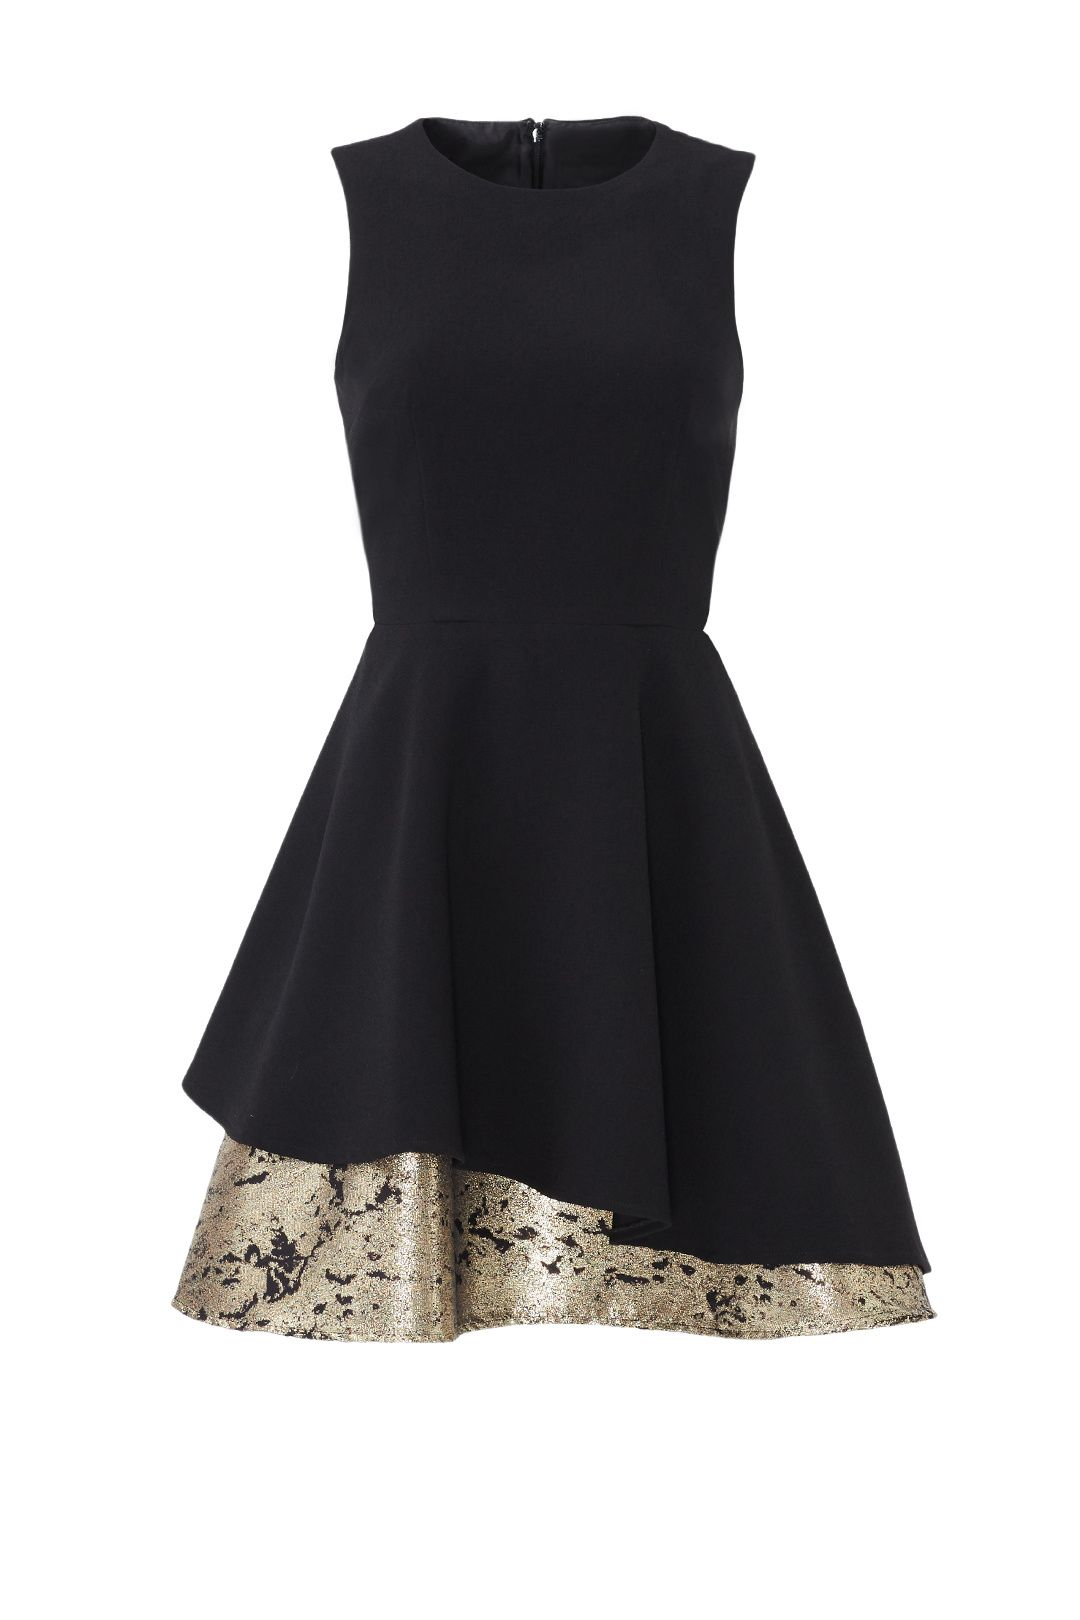 Rent Fifi Dress by Slate & Willow for $50 only at Rent the Runway.